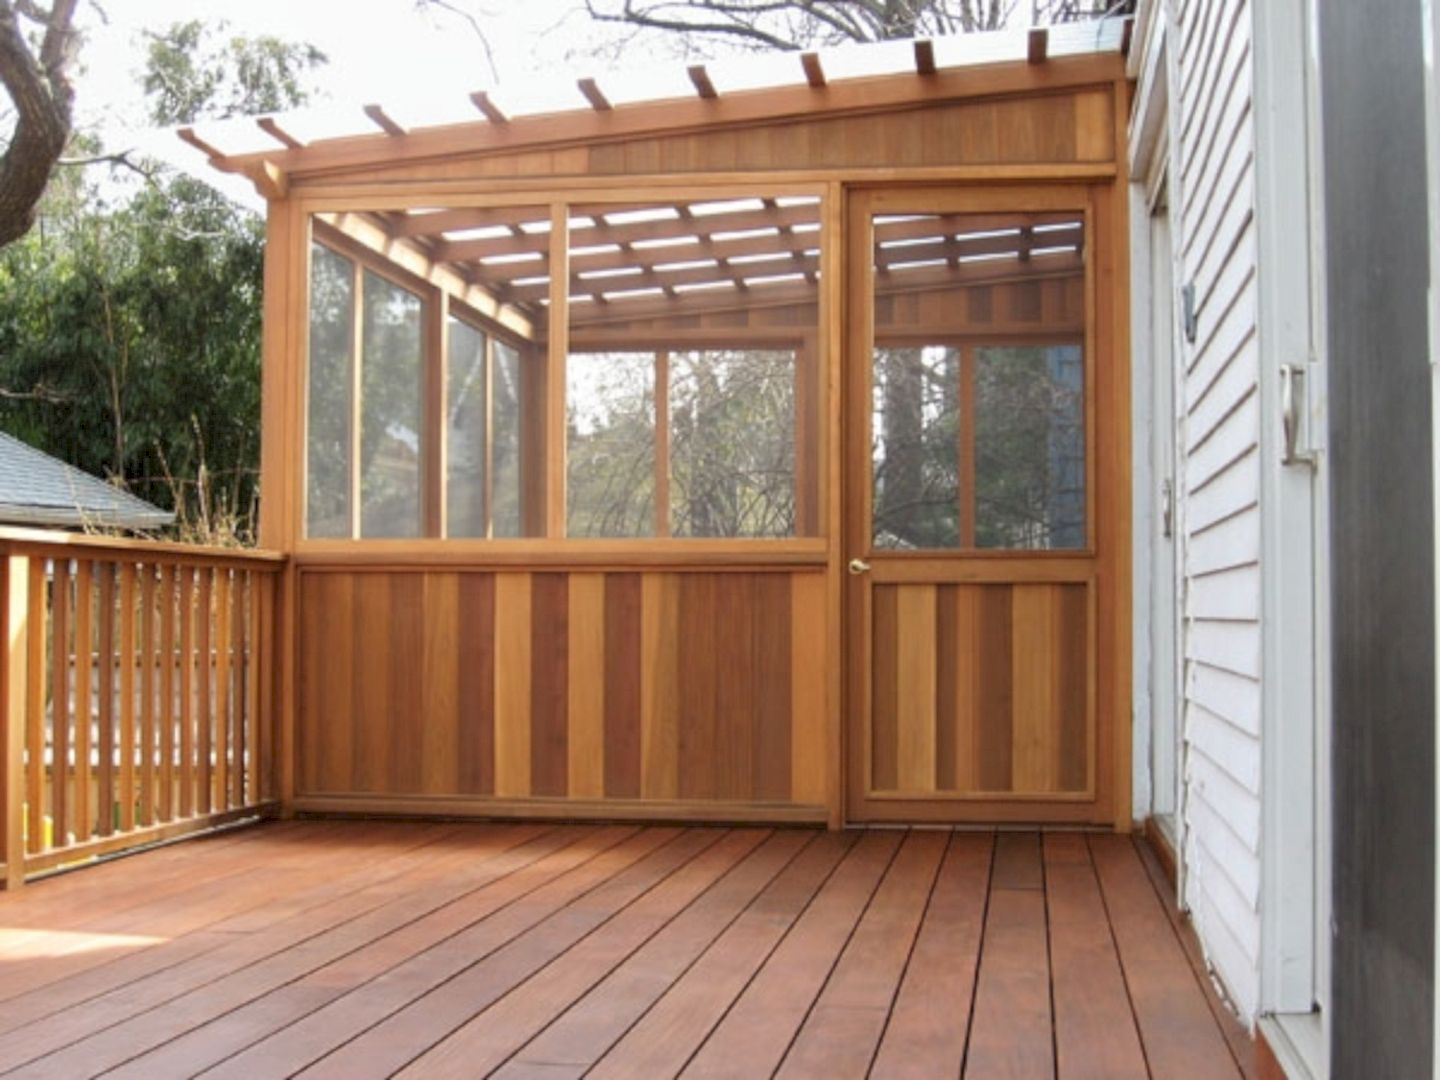 Wonderful Screened In Porch And Deck Idea 20 Porch